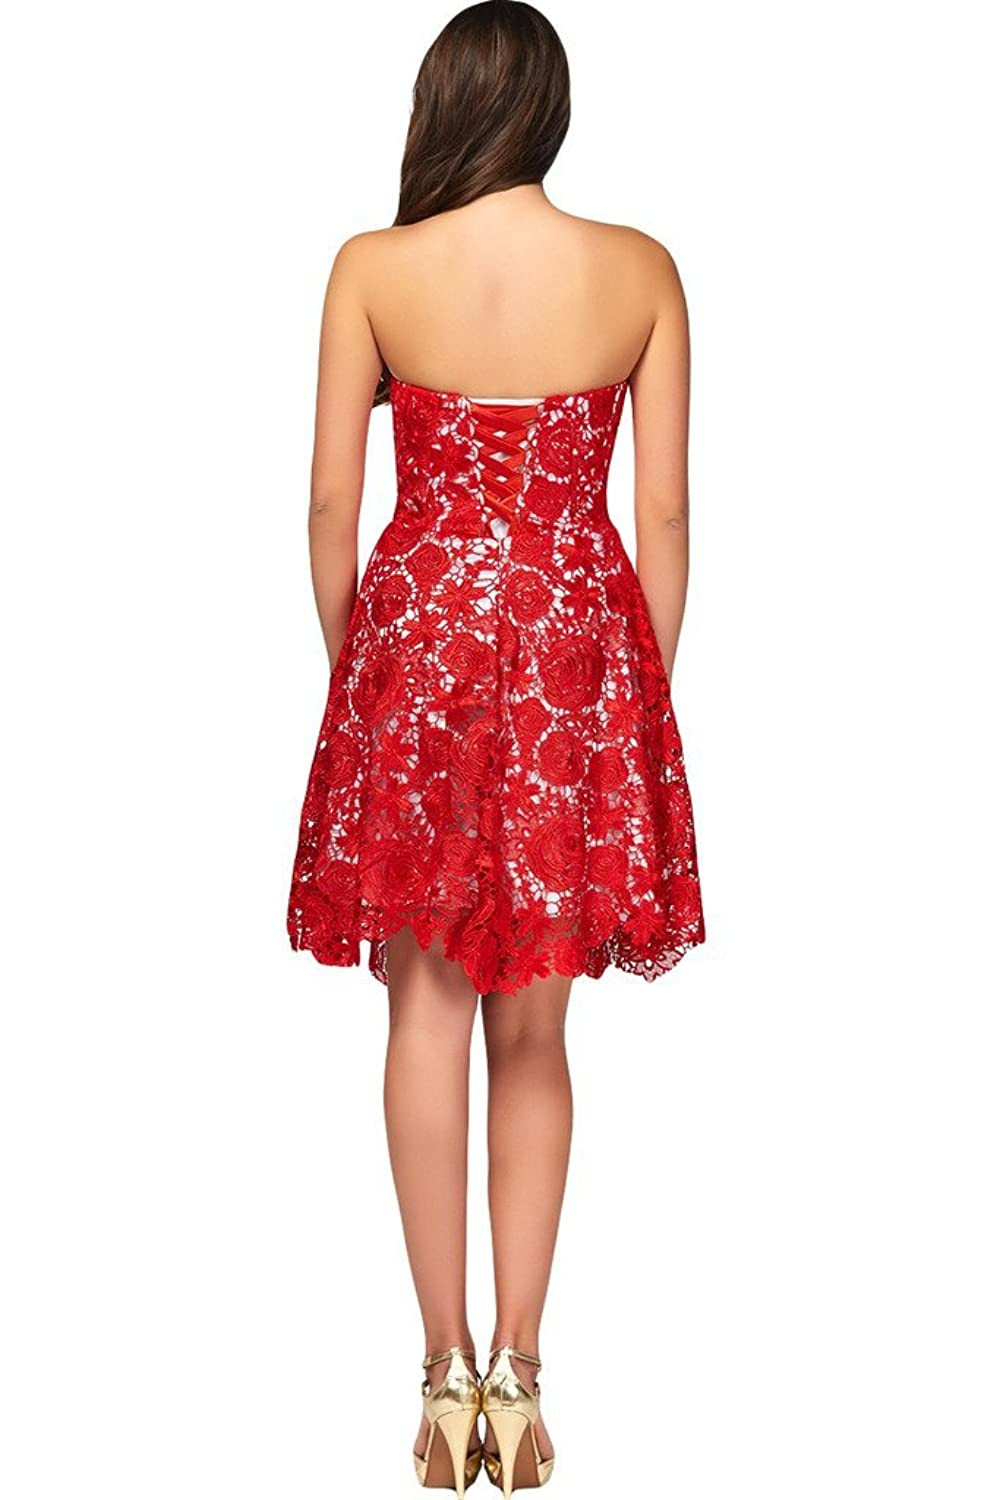 Ivydressing Sexy Sheath Short Slited Lace and Tulle Red Cocktail Formal Gown